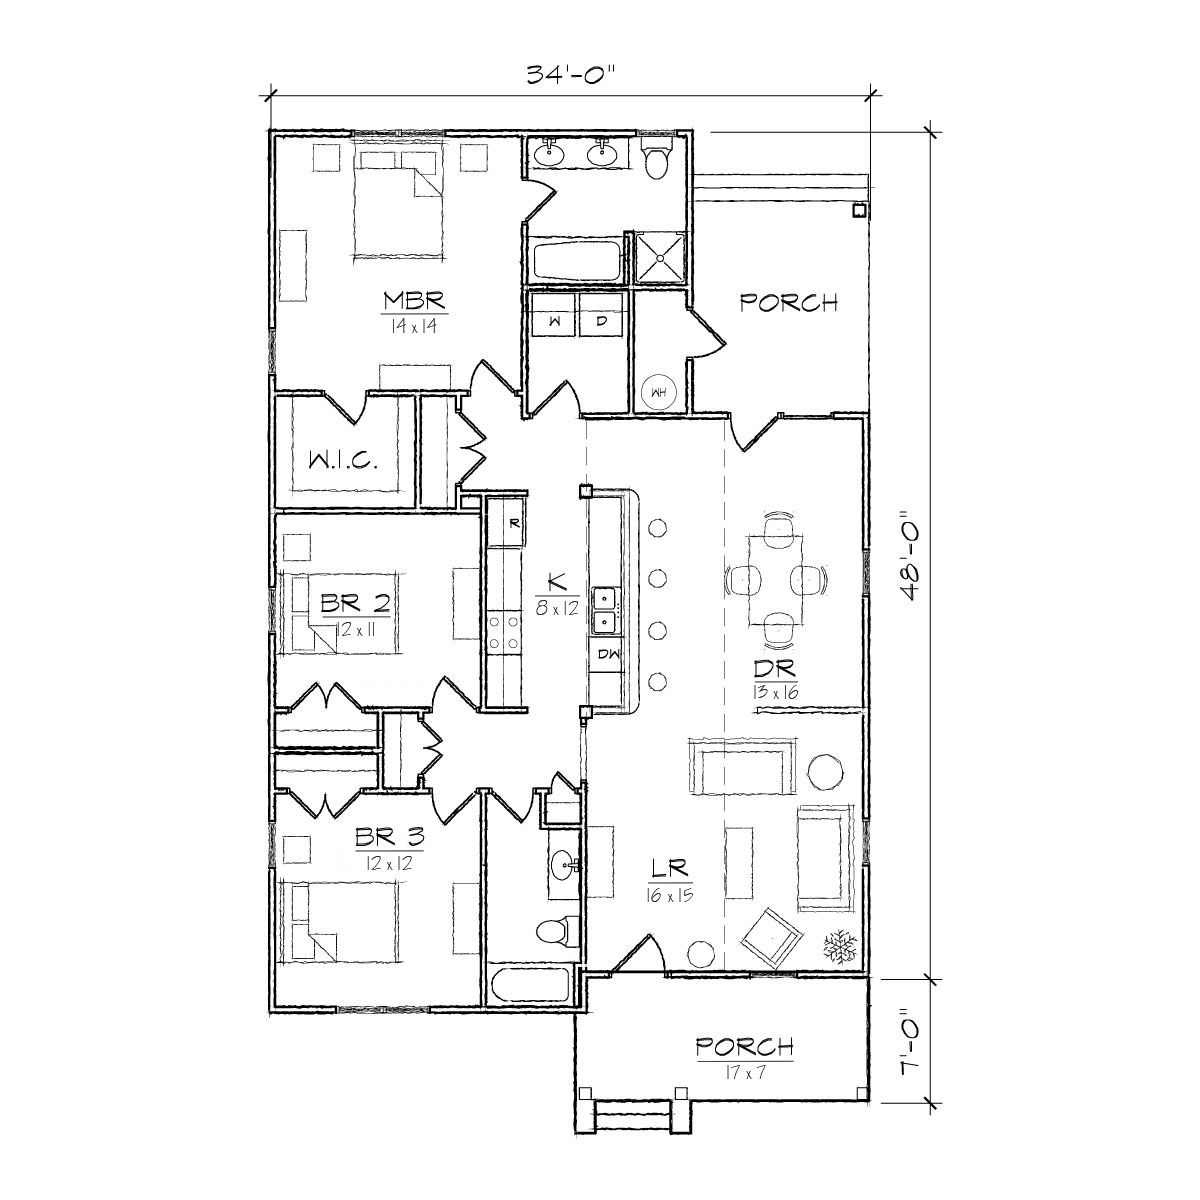 bungalow house plans with porches. Carolinian III Bungalow Floor Plan  TightLines Designs Shirl s